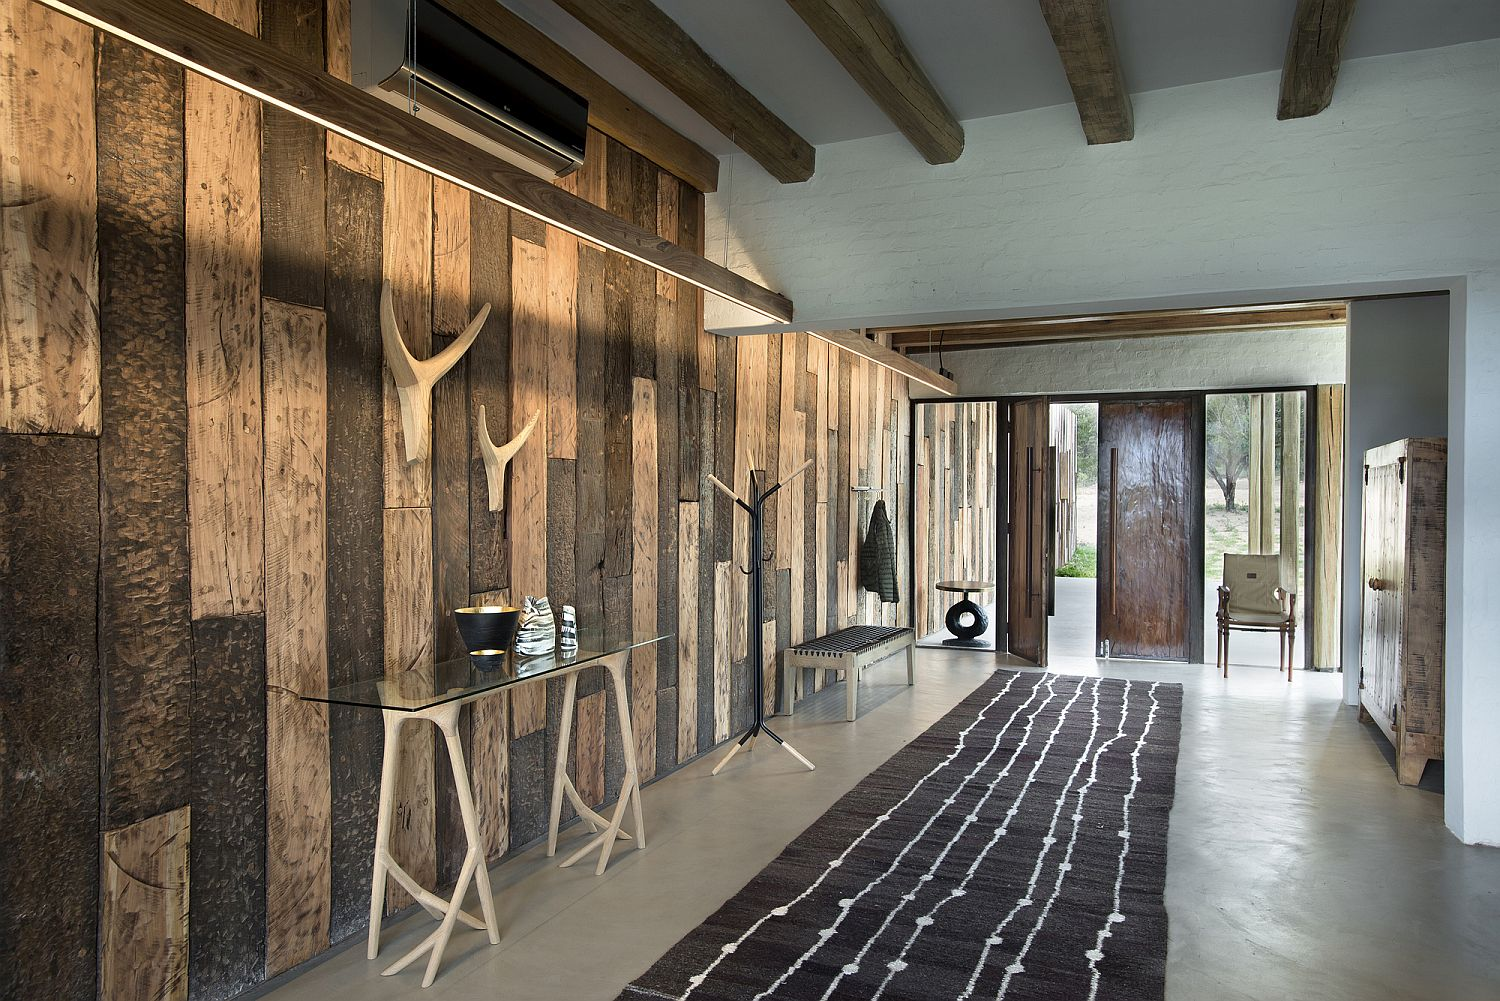 Delightful-use-of-wooden-planks-to-create-a-unique-entry